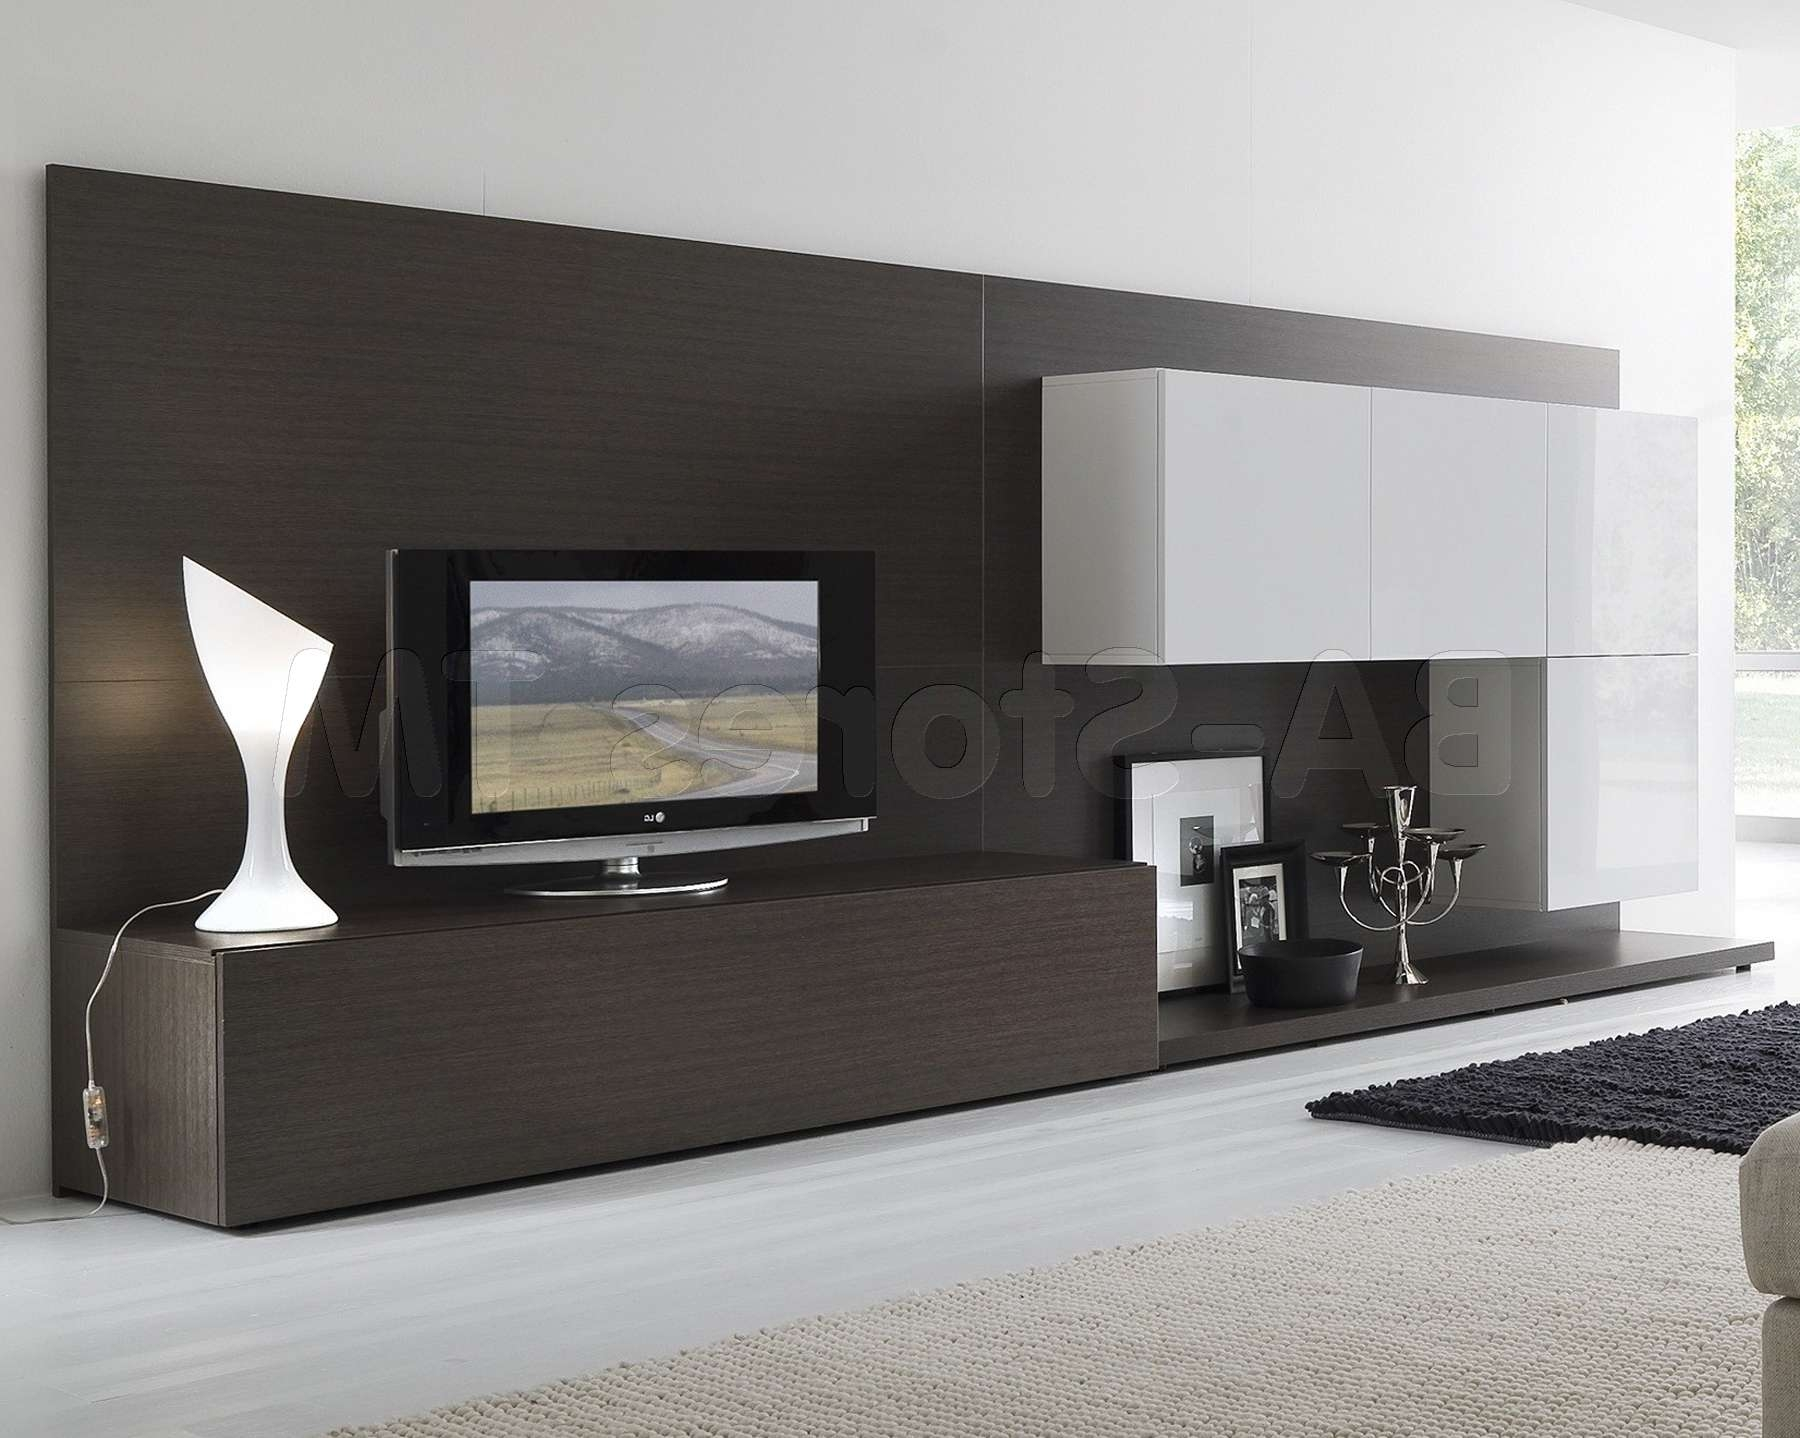 White And Black Wooden Cabinet With Rectangle Flat Screen Tv And Throughout Modern Tv Cabinets For Flat Screens (View 19 of 20)